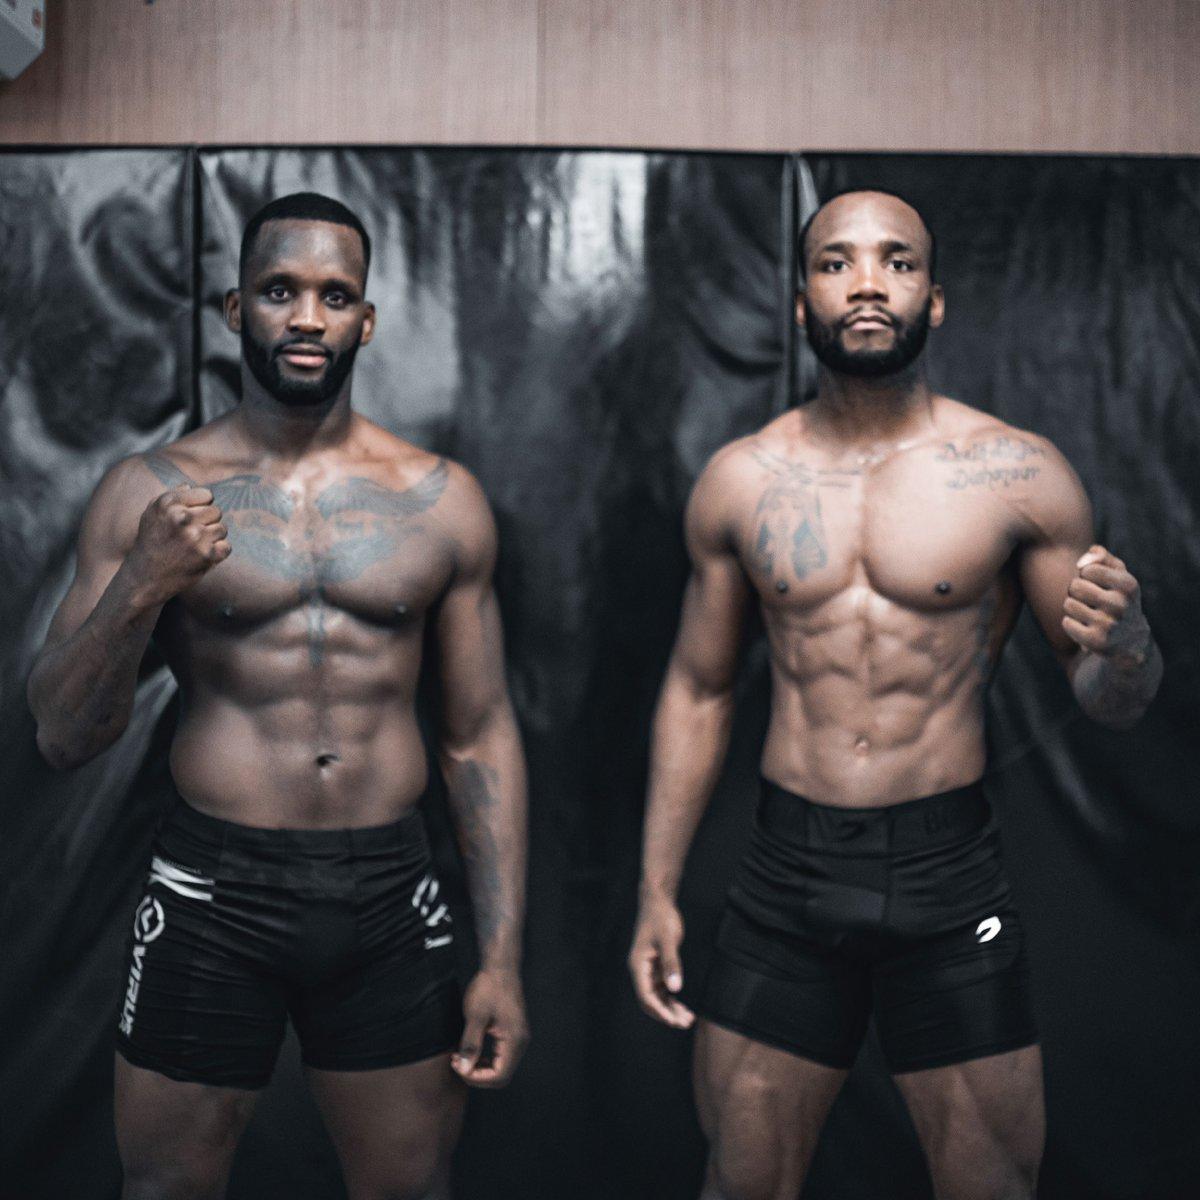 Team Edwards  Back to Back week in 🇺🇸 we're going to put on a master class @leon_edwardsmma https://t.co/cenfCEF4GX